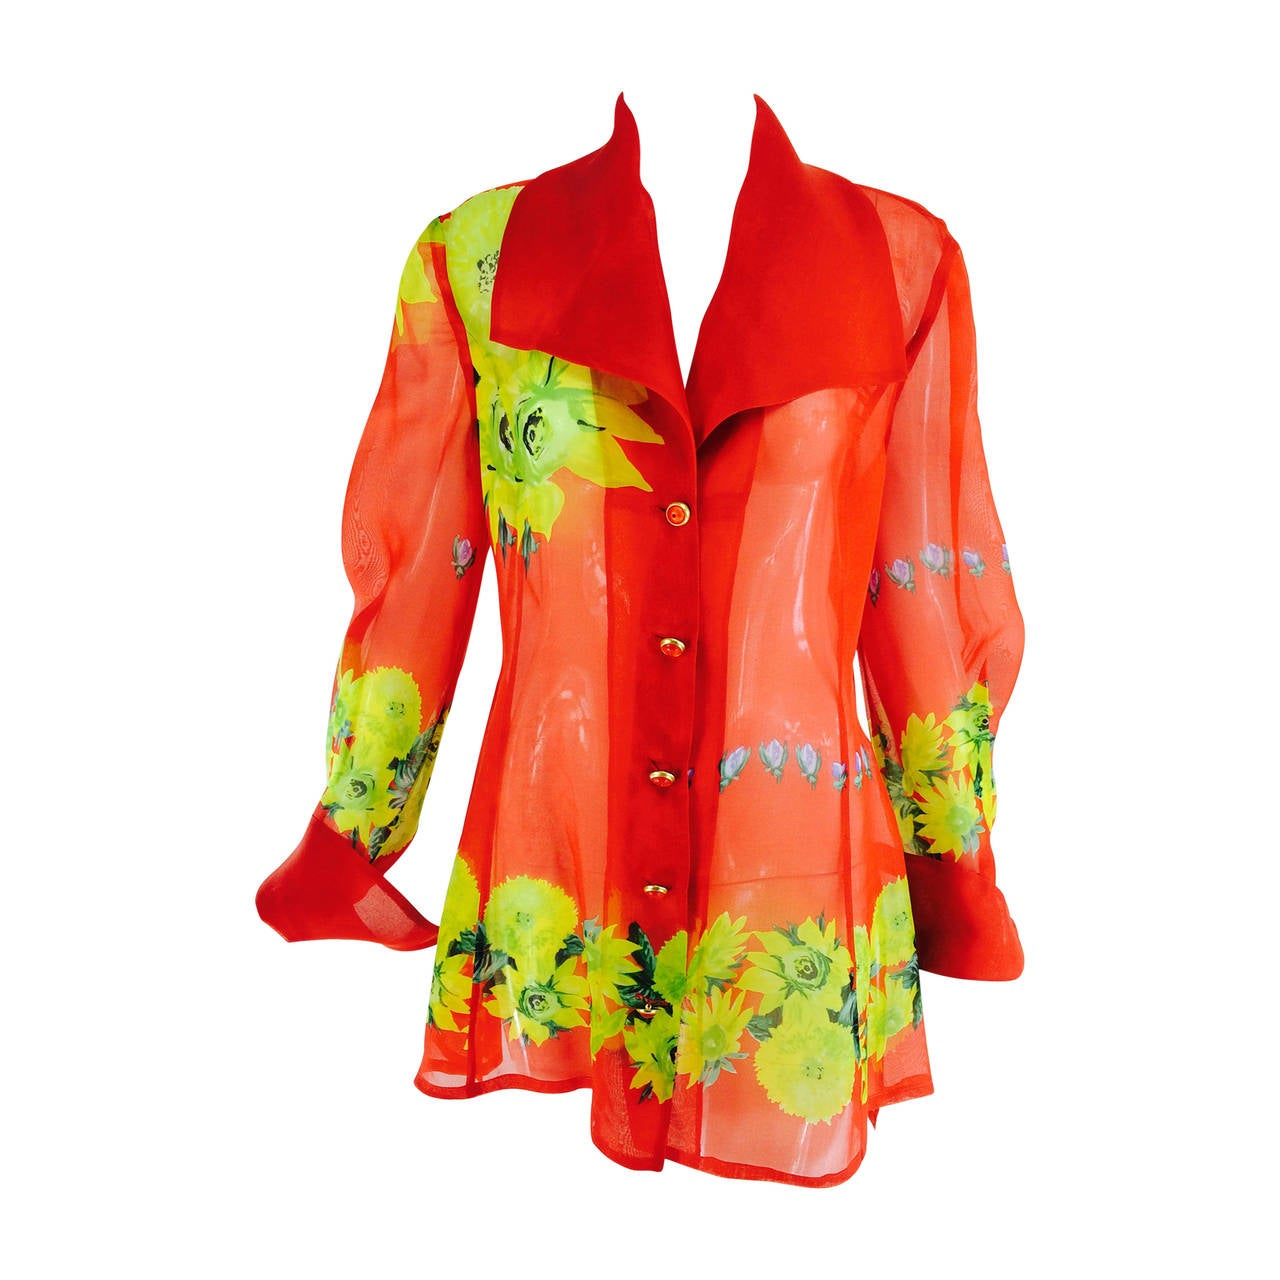 Christian Llinares France floral organza blouse 1980s For Sale